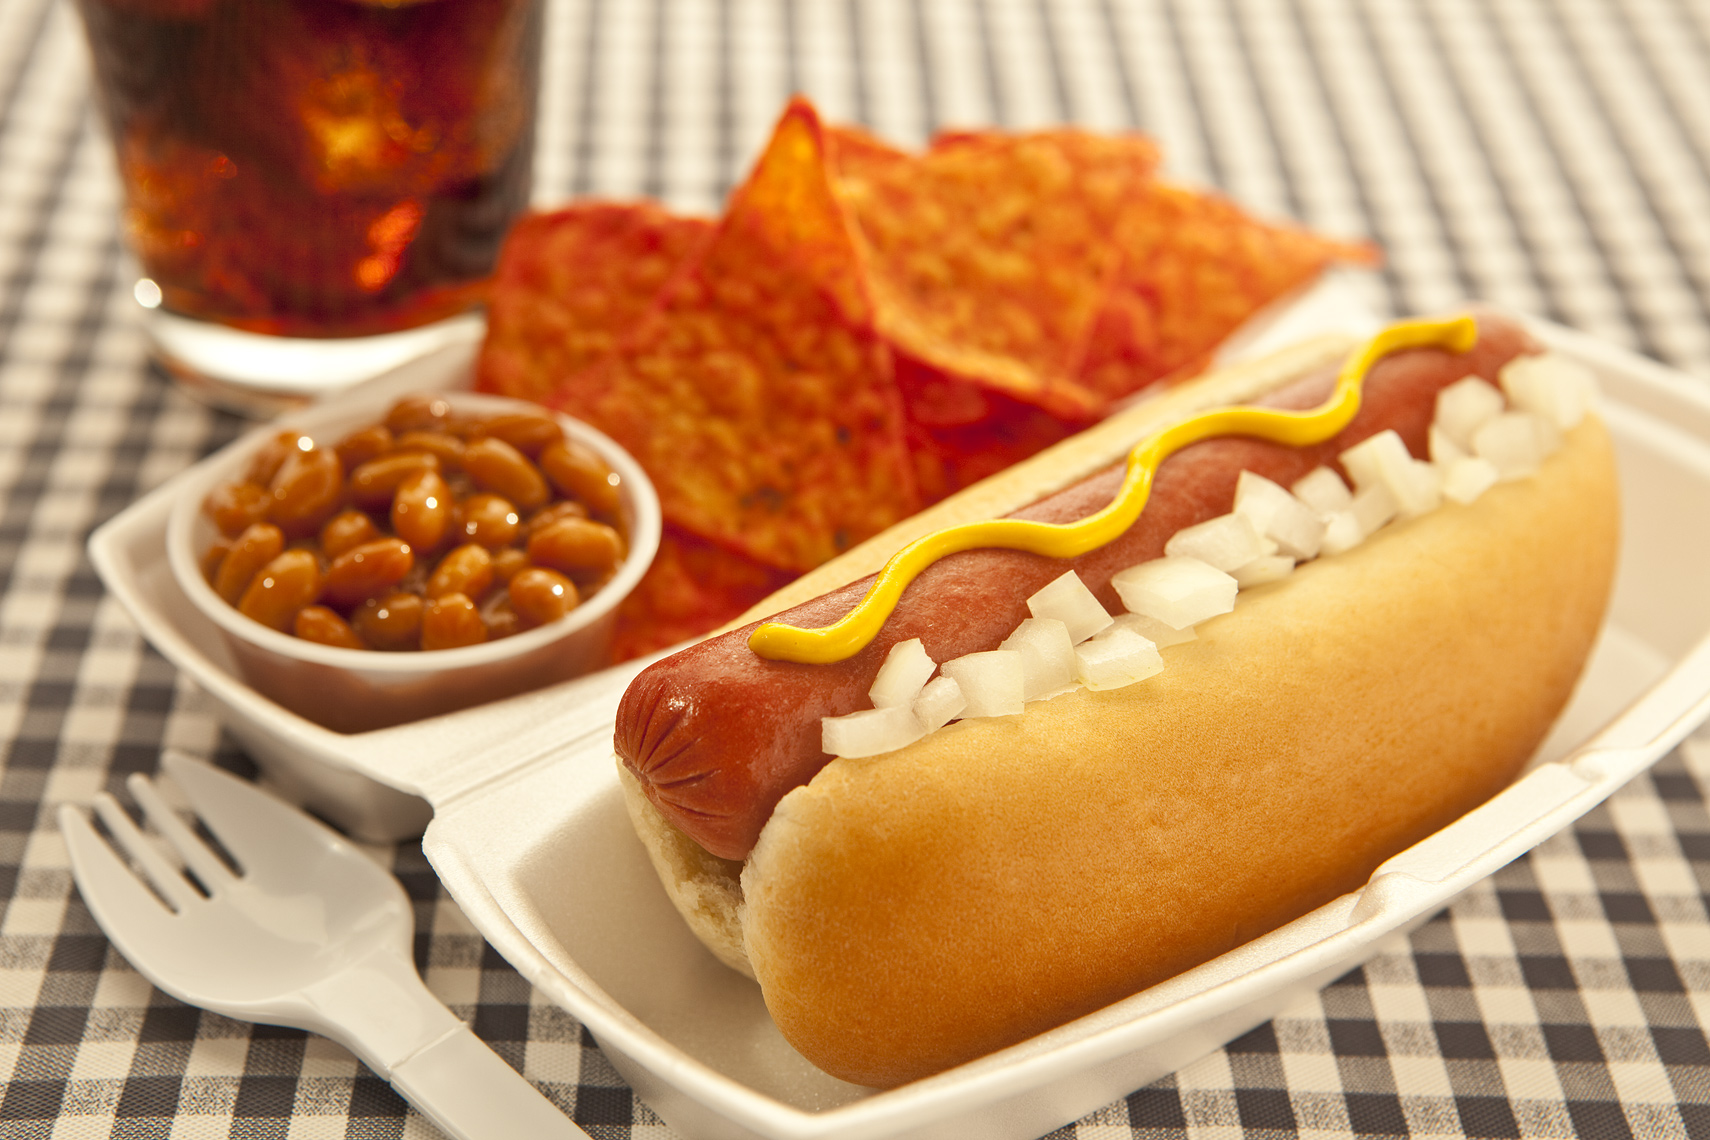 030Hot-Dog-To-Go0034.jpg